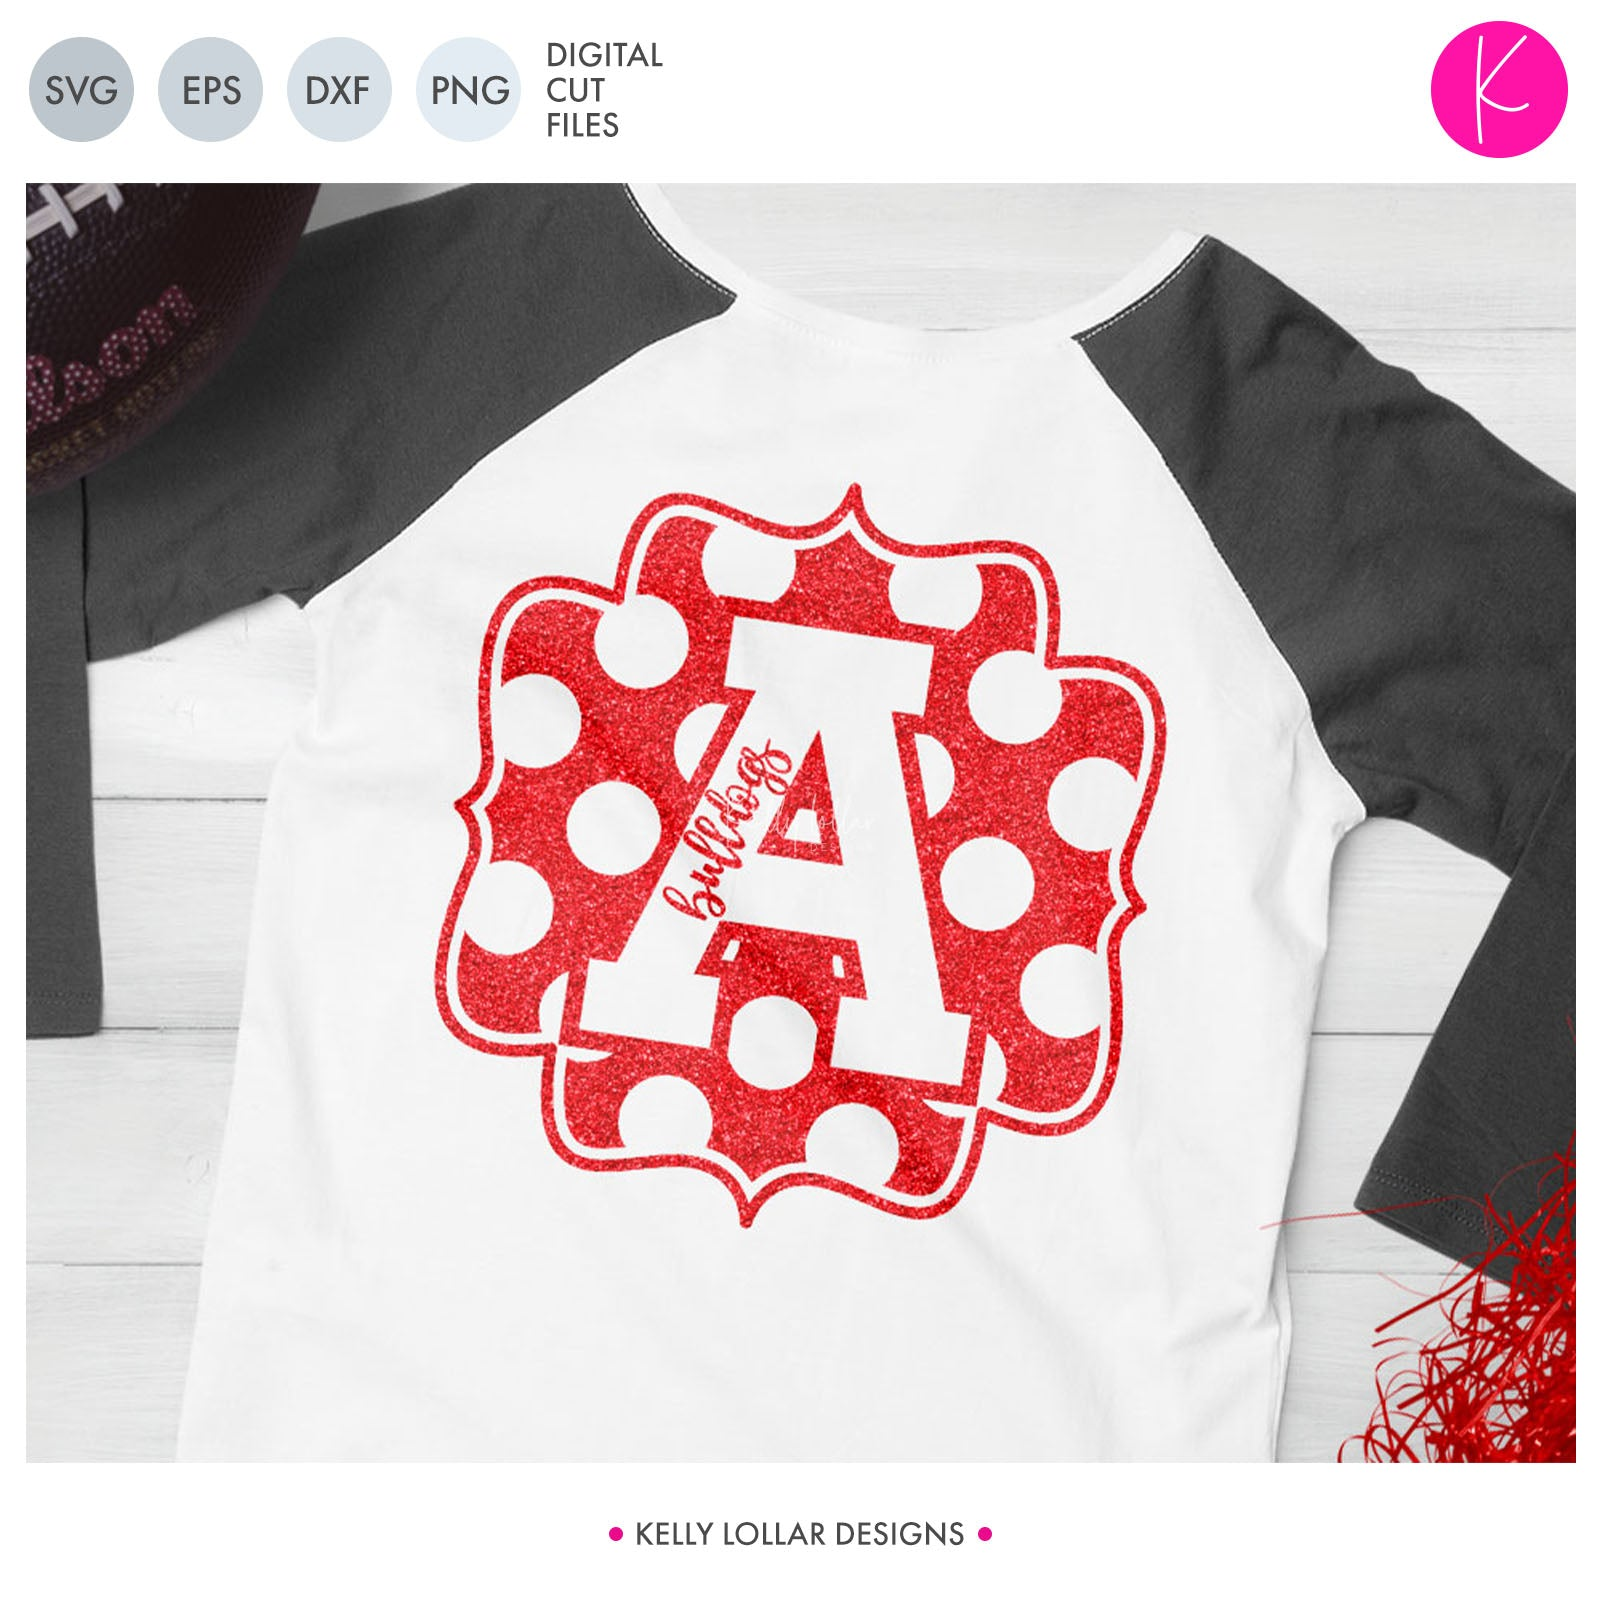 Athletic Letter Frames Pack | SVG DXF EPS PNG Cut Files Set of 26 Polka Dot Varsity Letter Frames for School Team Spirit Shirts, Tumblers and More | SVG DXF EPS PNG Cut Files Create you very own varsity monograms to